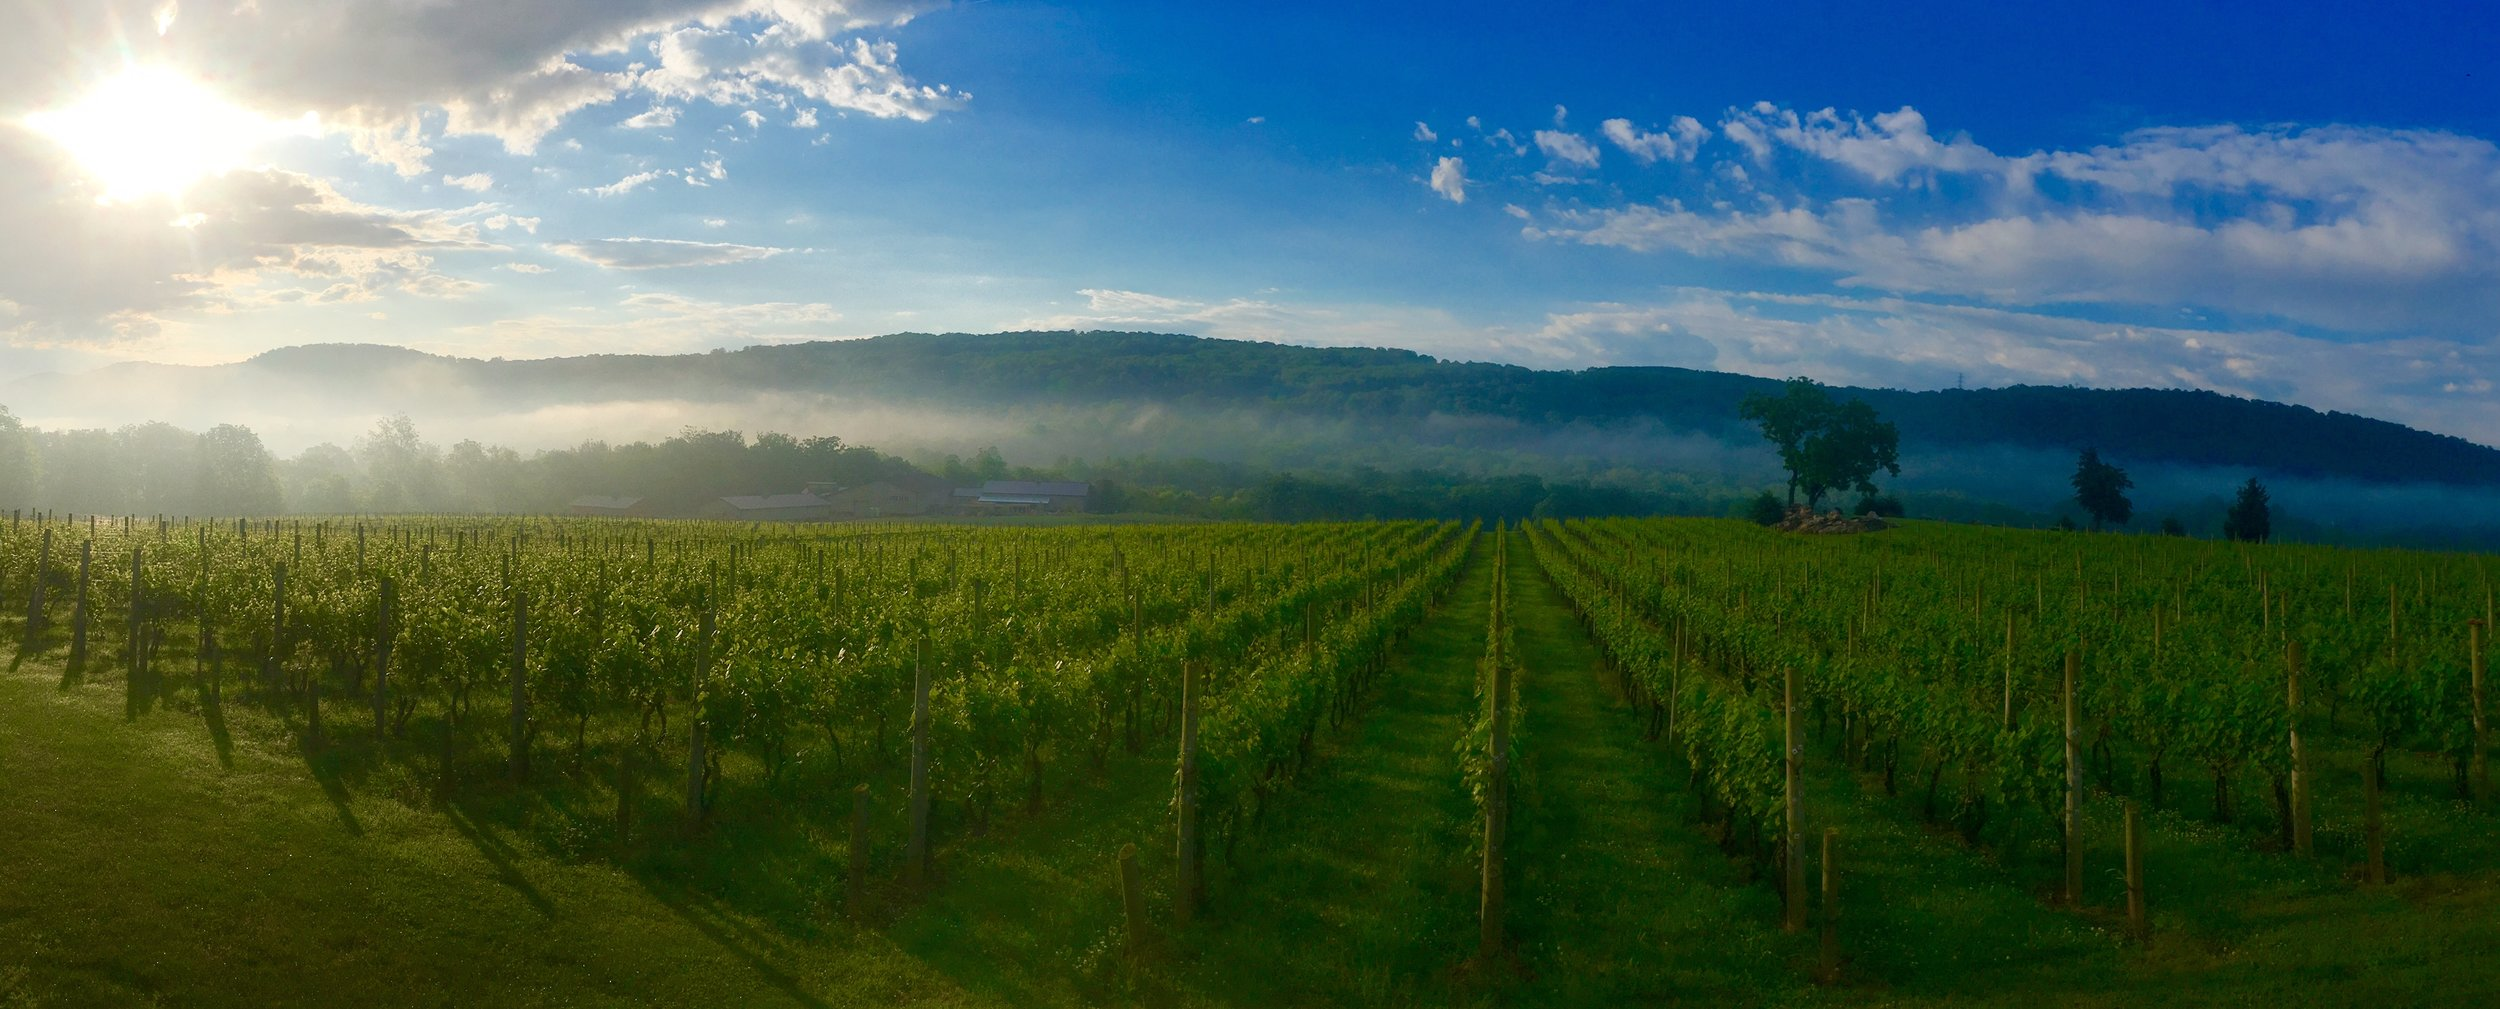 Alba Vineyard & Winery sunrise